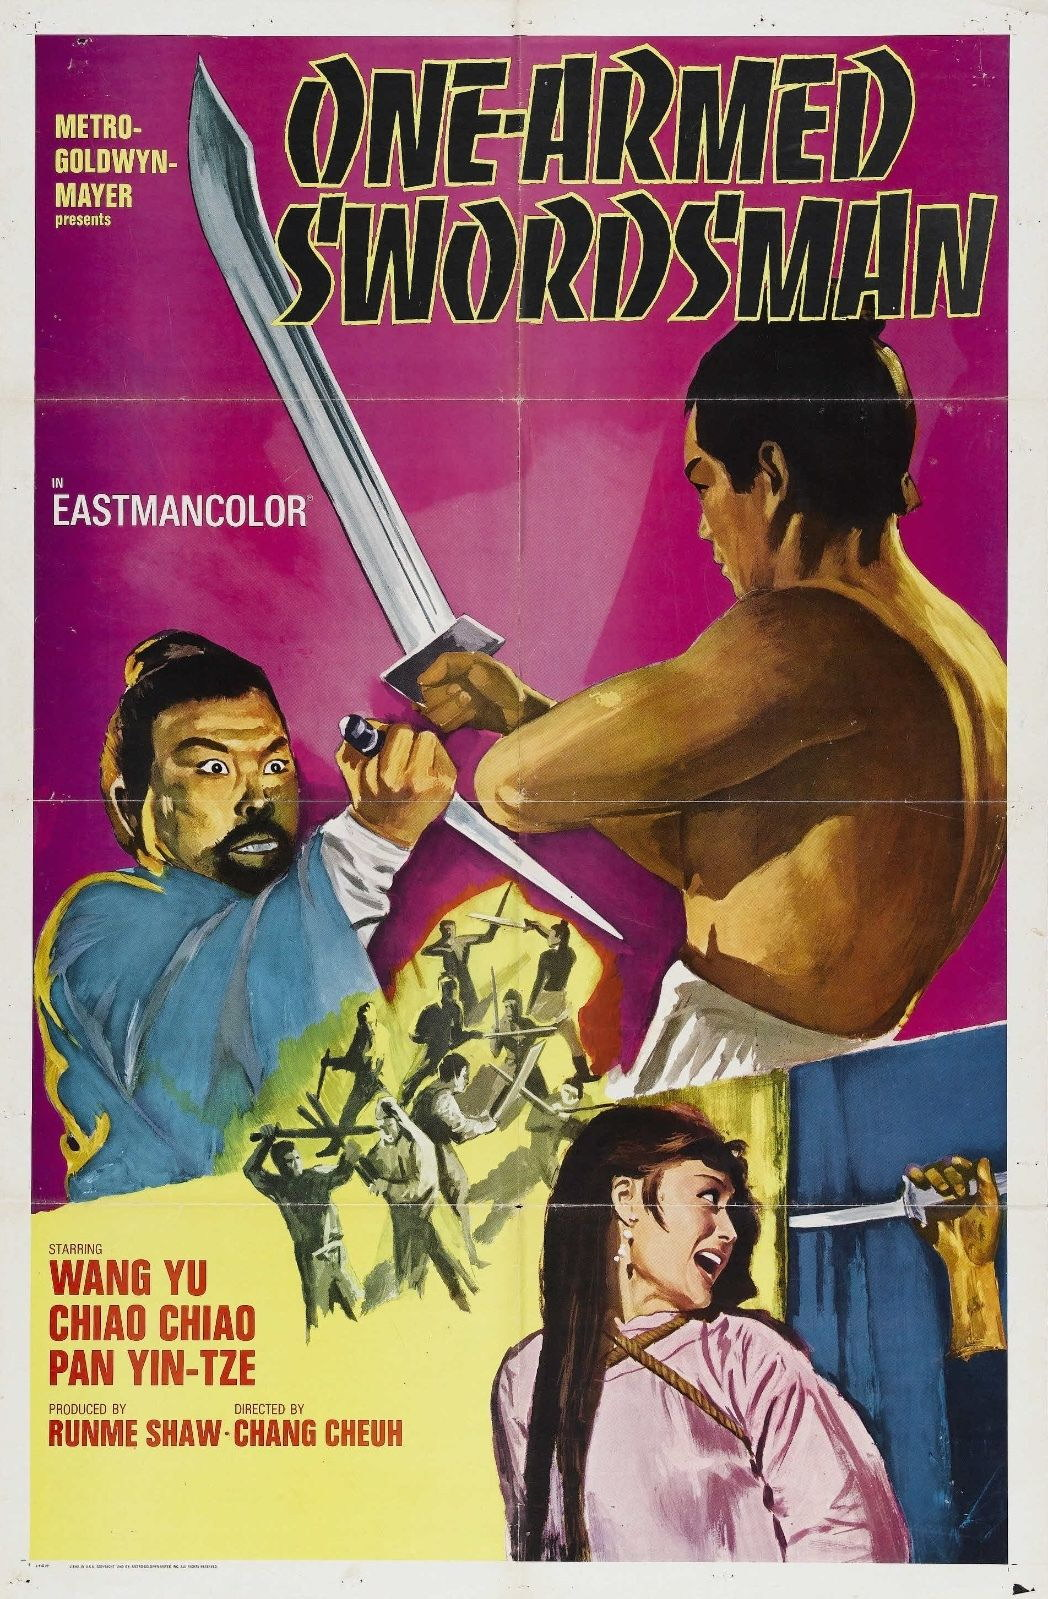 73347-One-Armed-Swordsman-Drama-Action-Shaw-Brothers-Wall-Print-Poster-Affiche